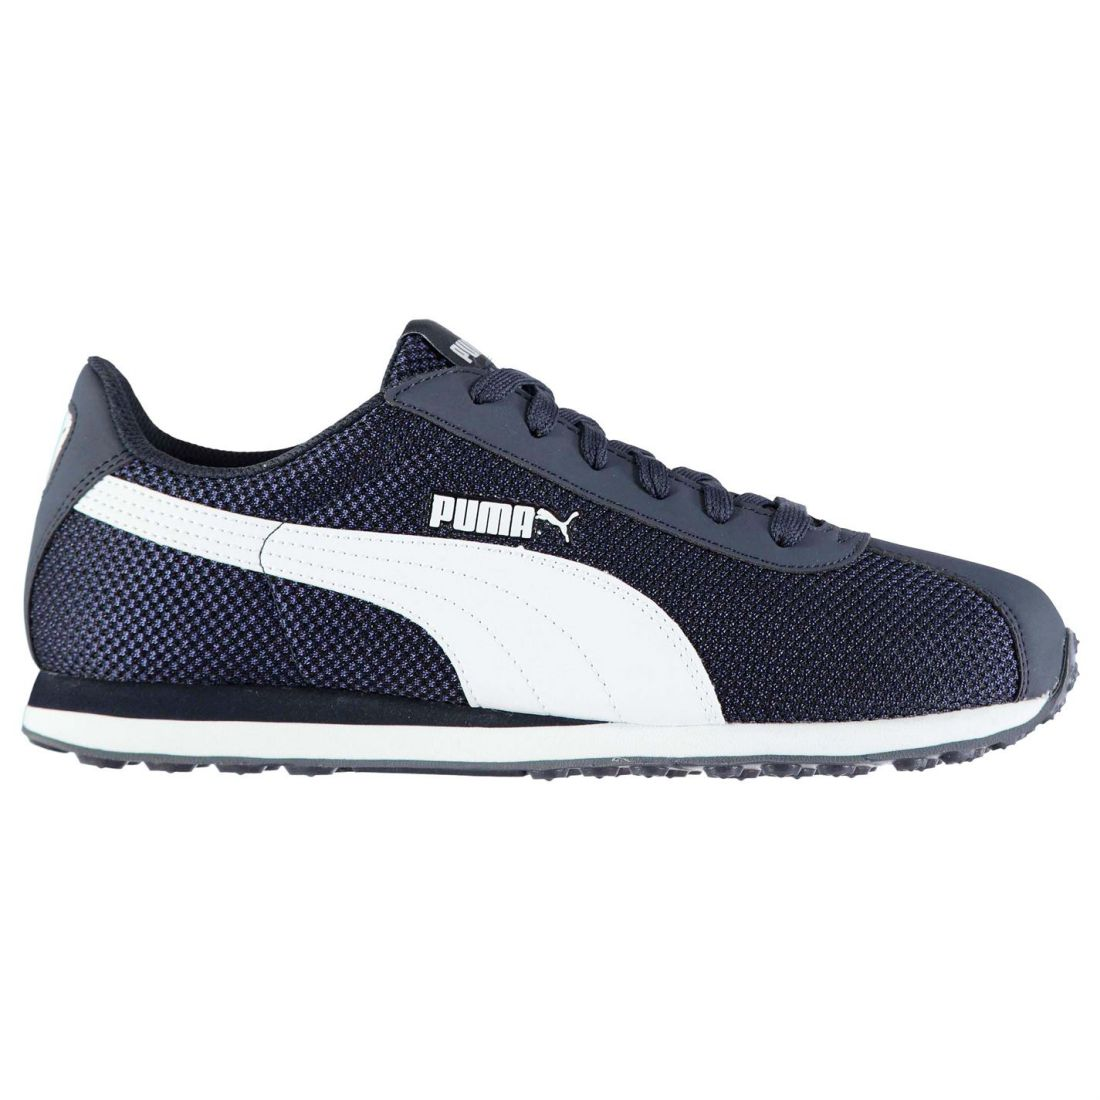 Puma-Mens-Gents-Turin-Mesh-Trainers-Shoes-Laces-Fastened-Footwear thumbnail 2